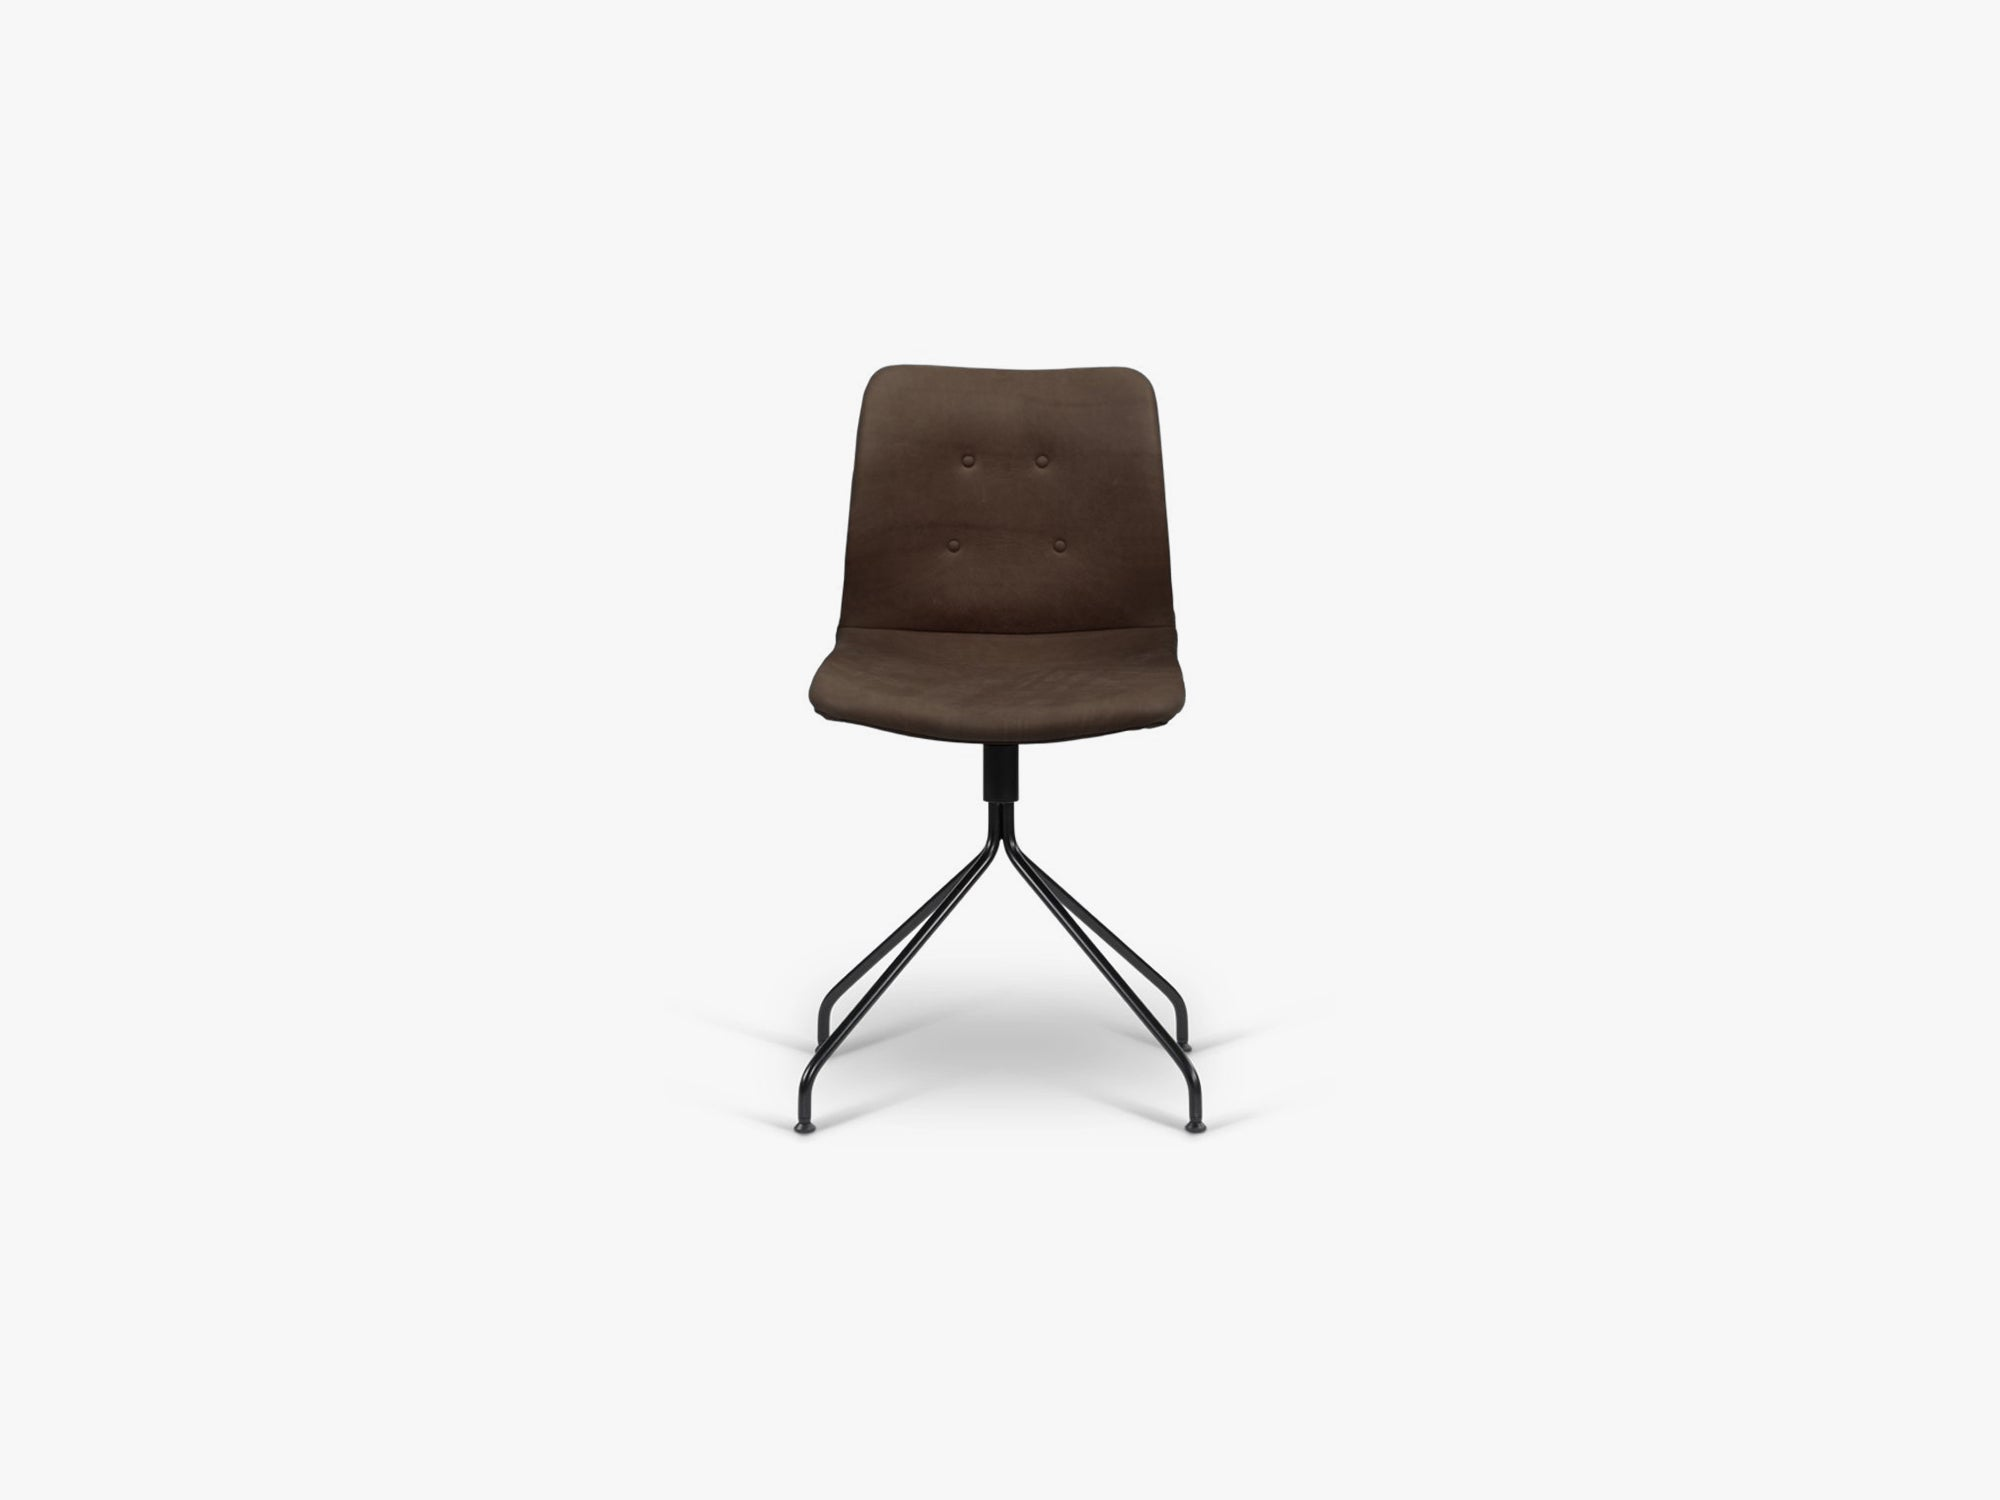 Primum Chair u arm, drejestel sort, Davos, Umbra fra Bent Hansen